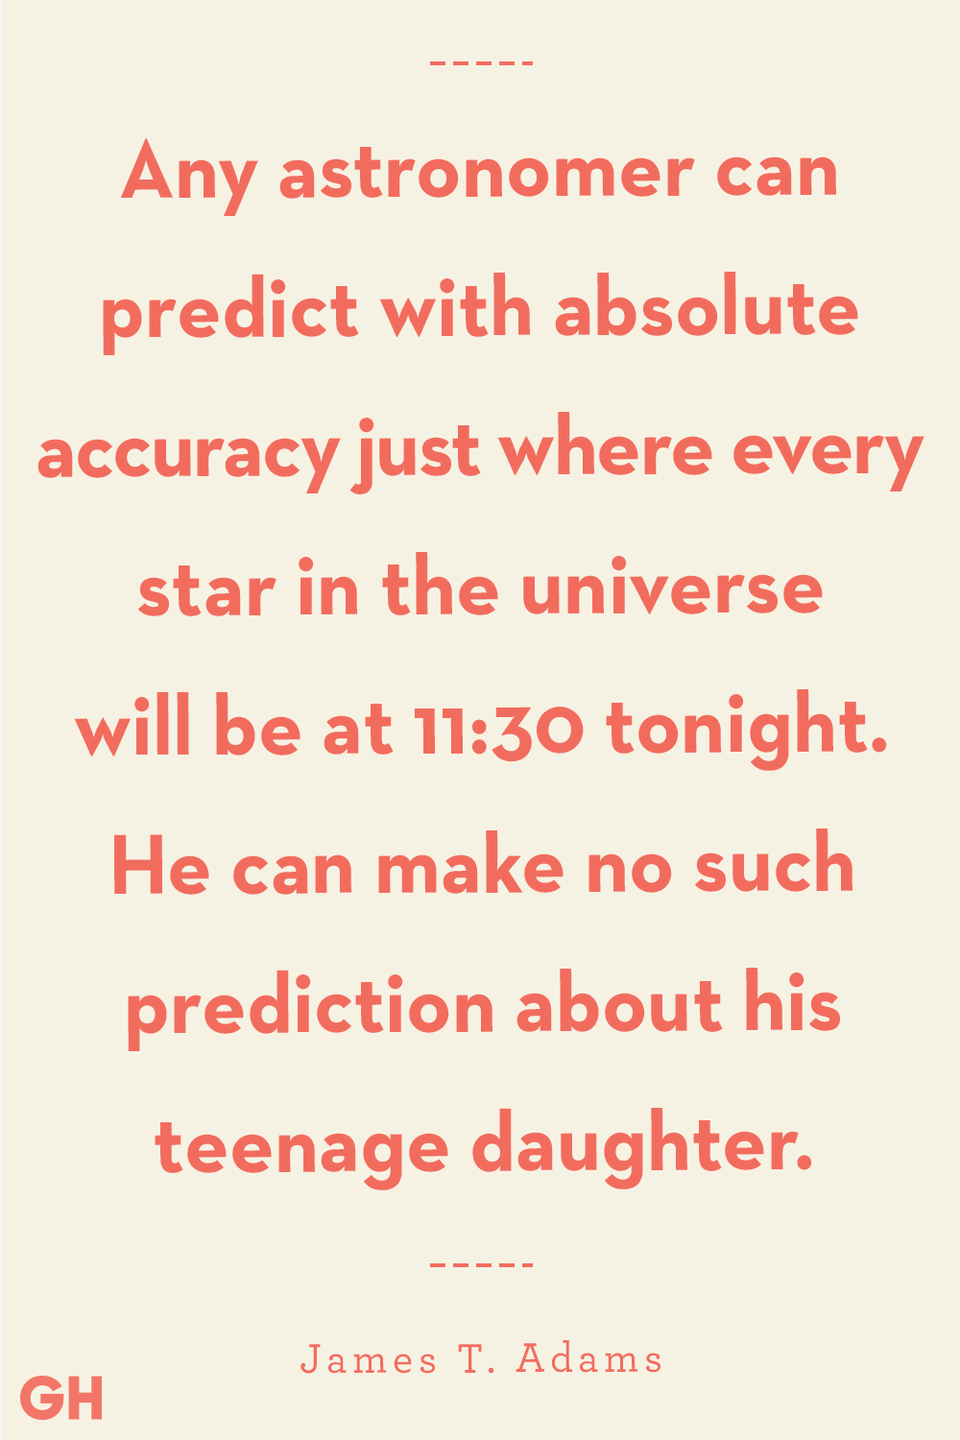 <p>Any astronomer can predict with absolute accuracy just where every star in the universe will be at 11:30 tonight. He can make no such prediction about his teenage daughter.</p>